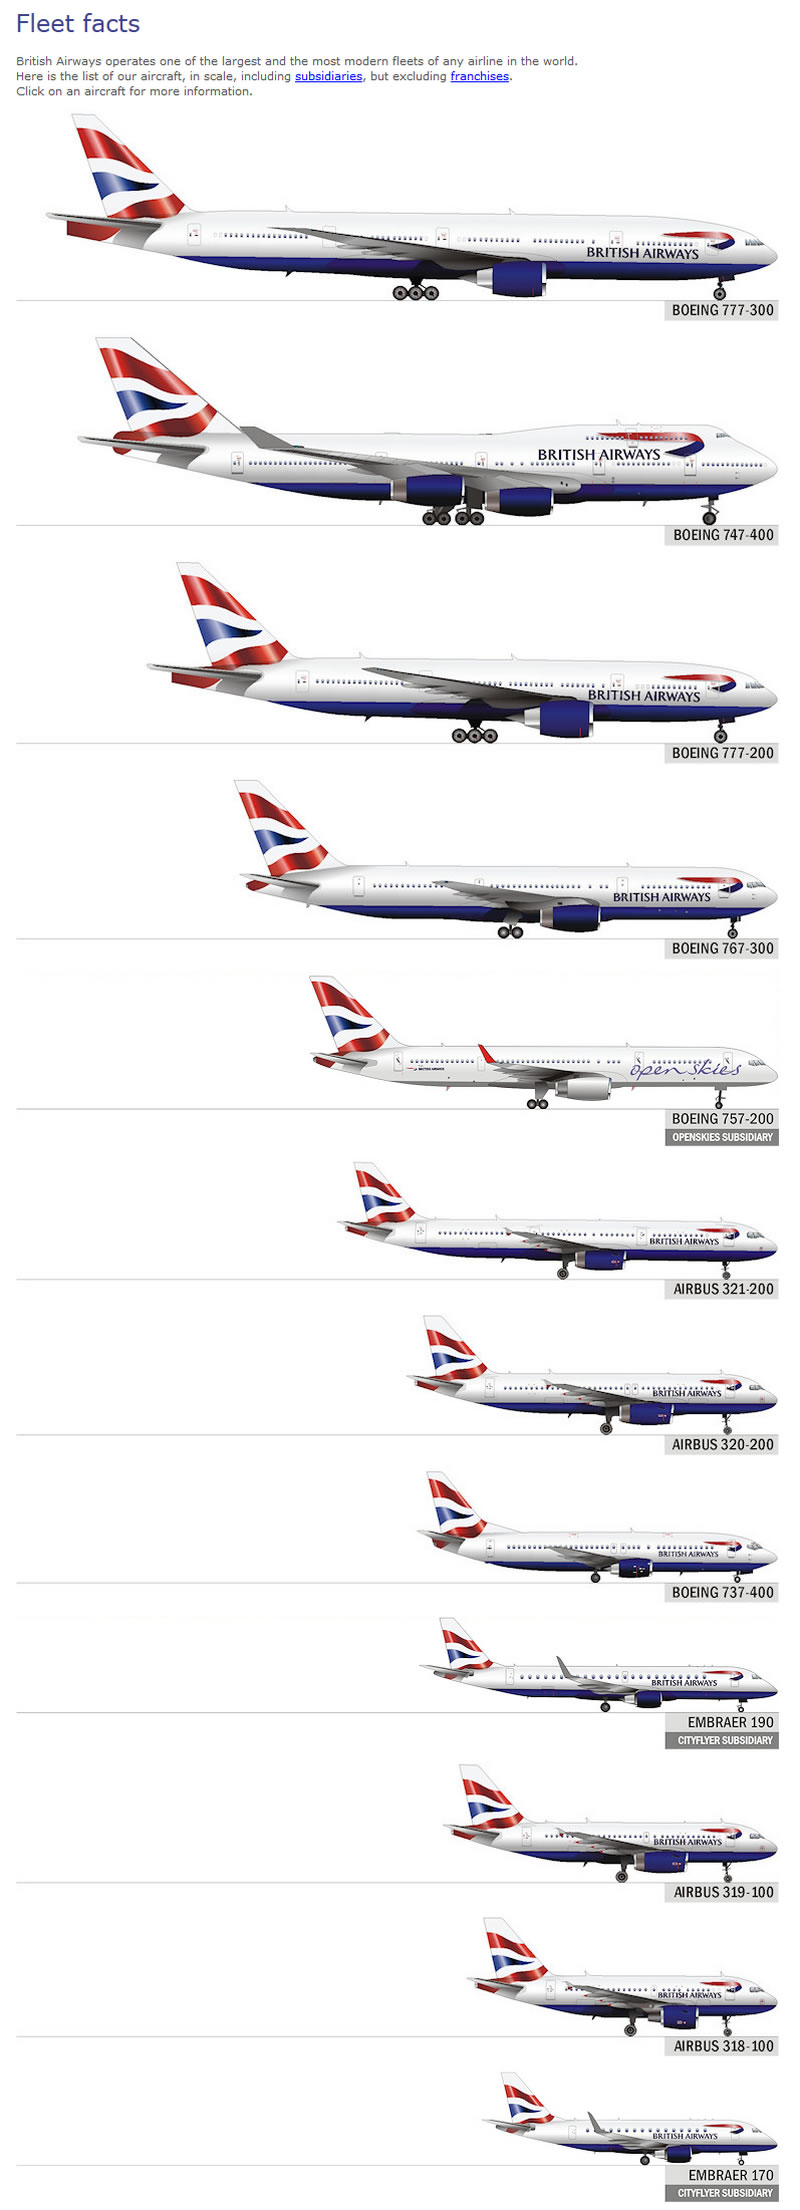 planes on google maps with American Airlines Fleet on Los 10 Principios Del Nuevo Marketing De Philip Kotler also 207493157 in addition Nuevo Google Maps Hace Rutas Varios Destinos further Maps Of The Crash Of Malaysian Airlines Flight Mh17 further I Believe We Live On A Flat Earth Because.